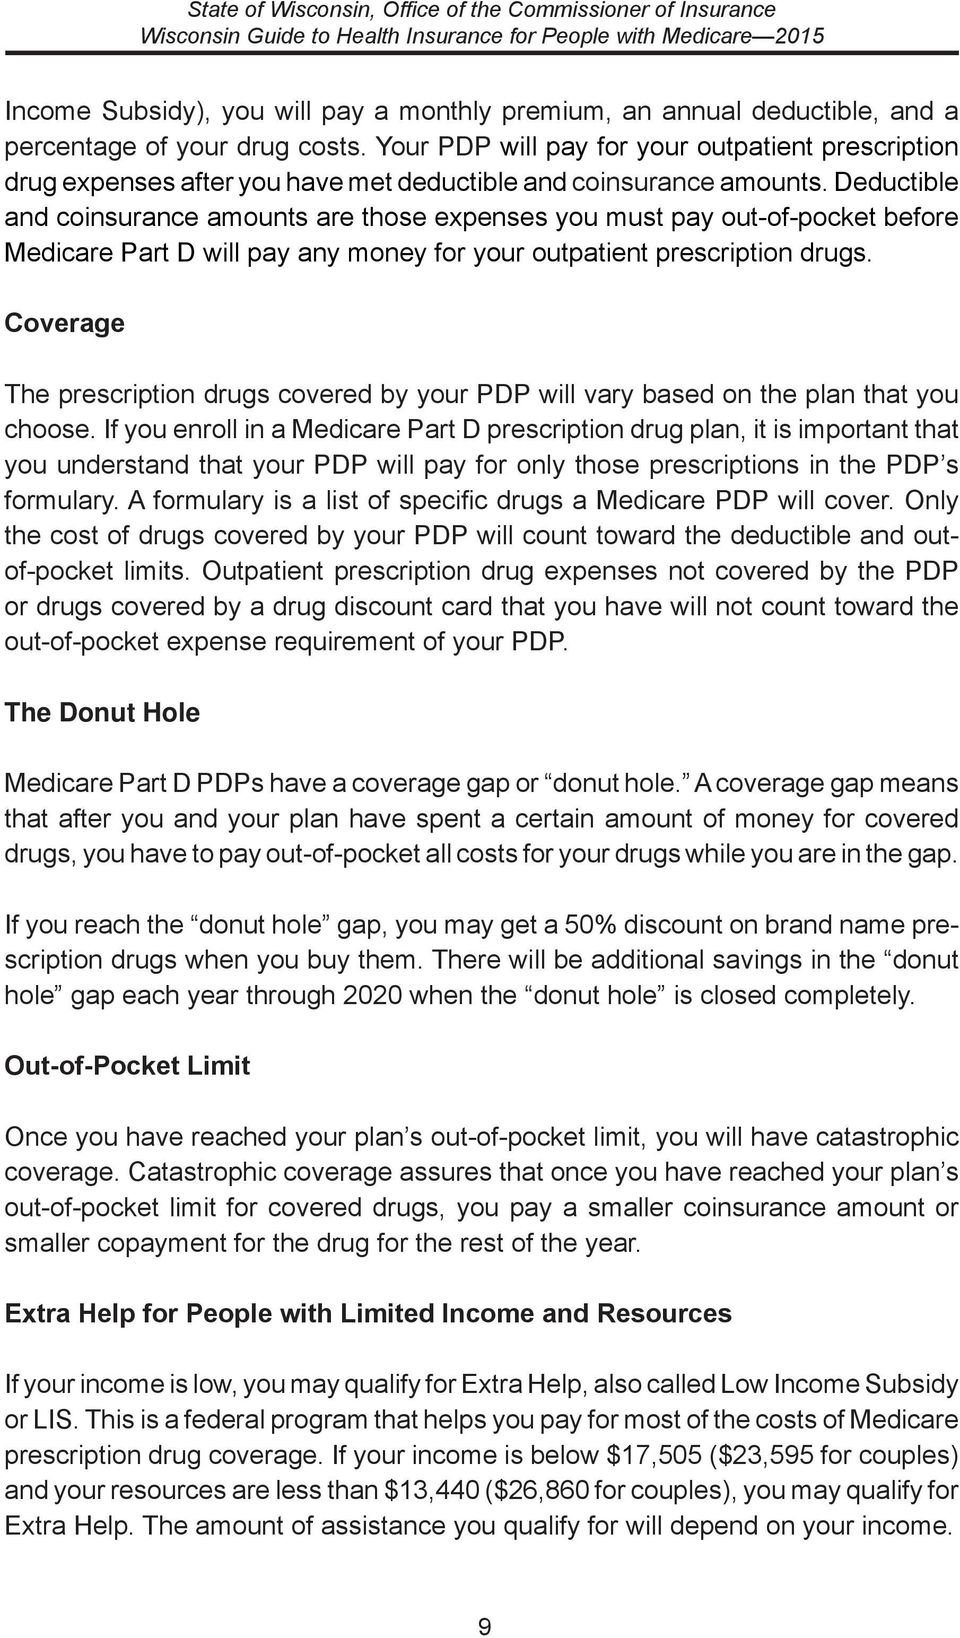 Deductible and coinsurance amounts are those expenses you must pay out-of-pocket before Medicare Part D will pay any money for your outpatient prescription drugs.